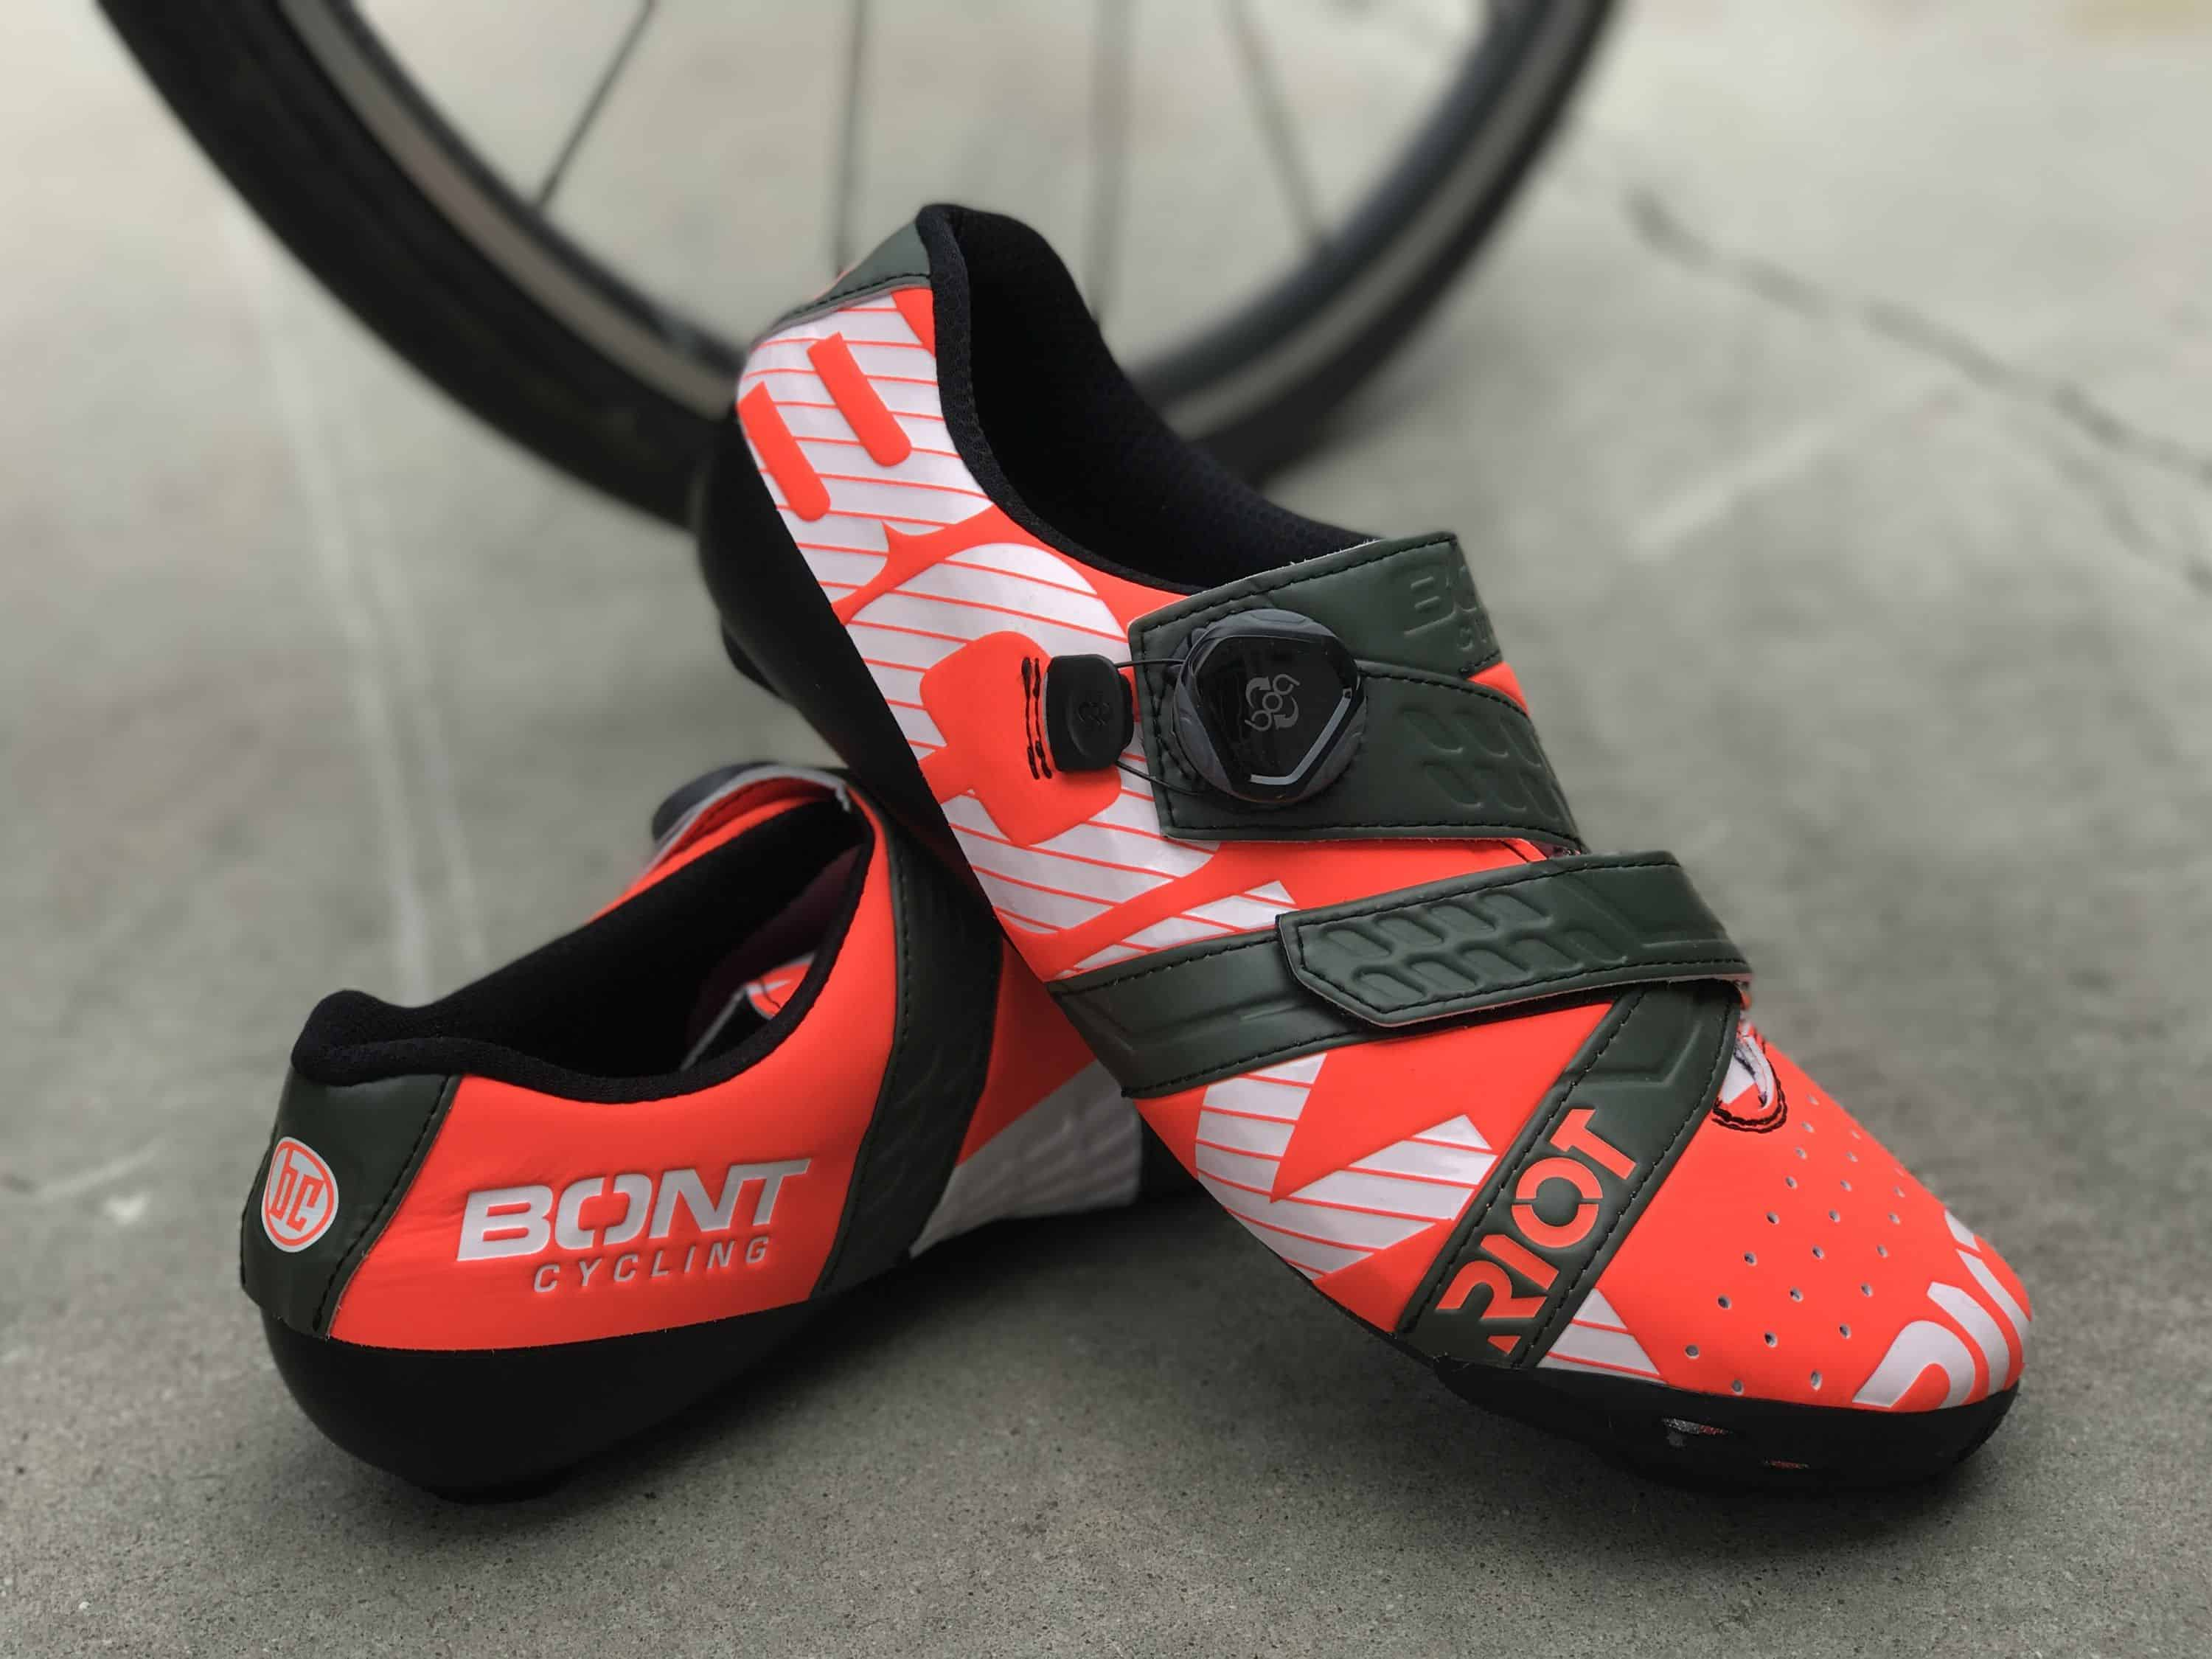 15 Best Cycling Shoes and Pedals of 2018 - Buying Guide and Reviews 1